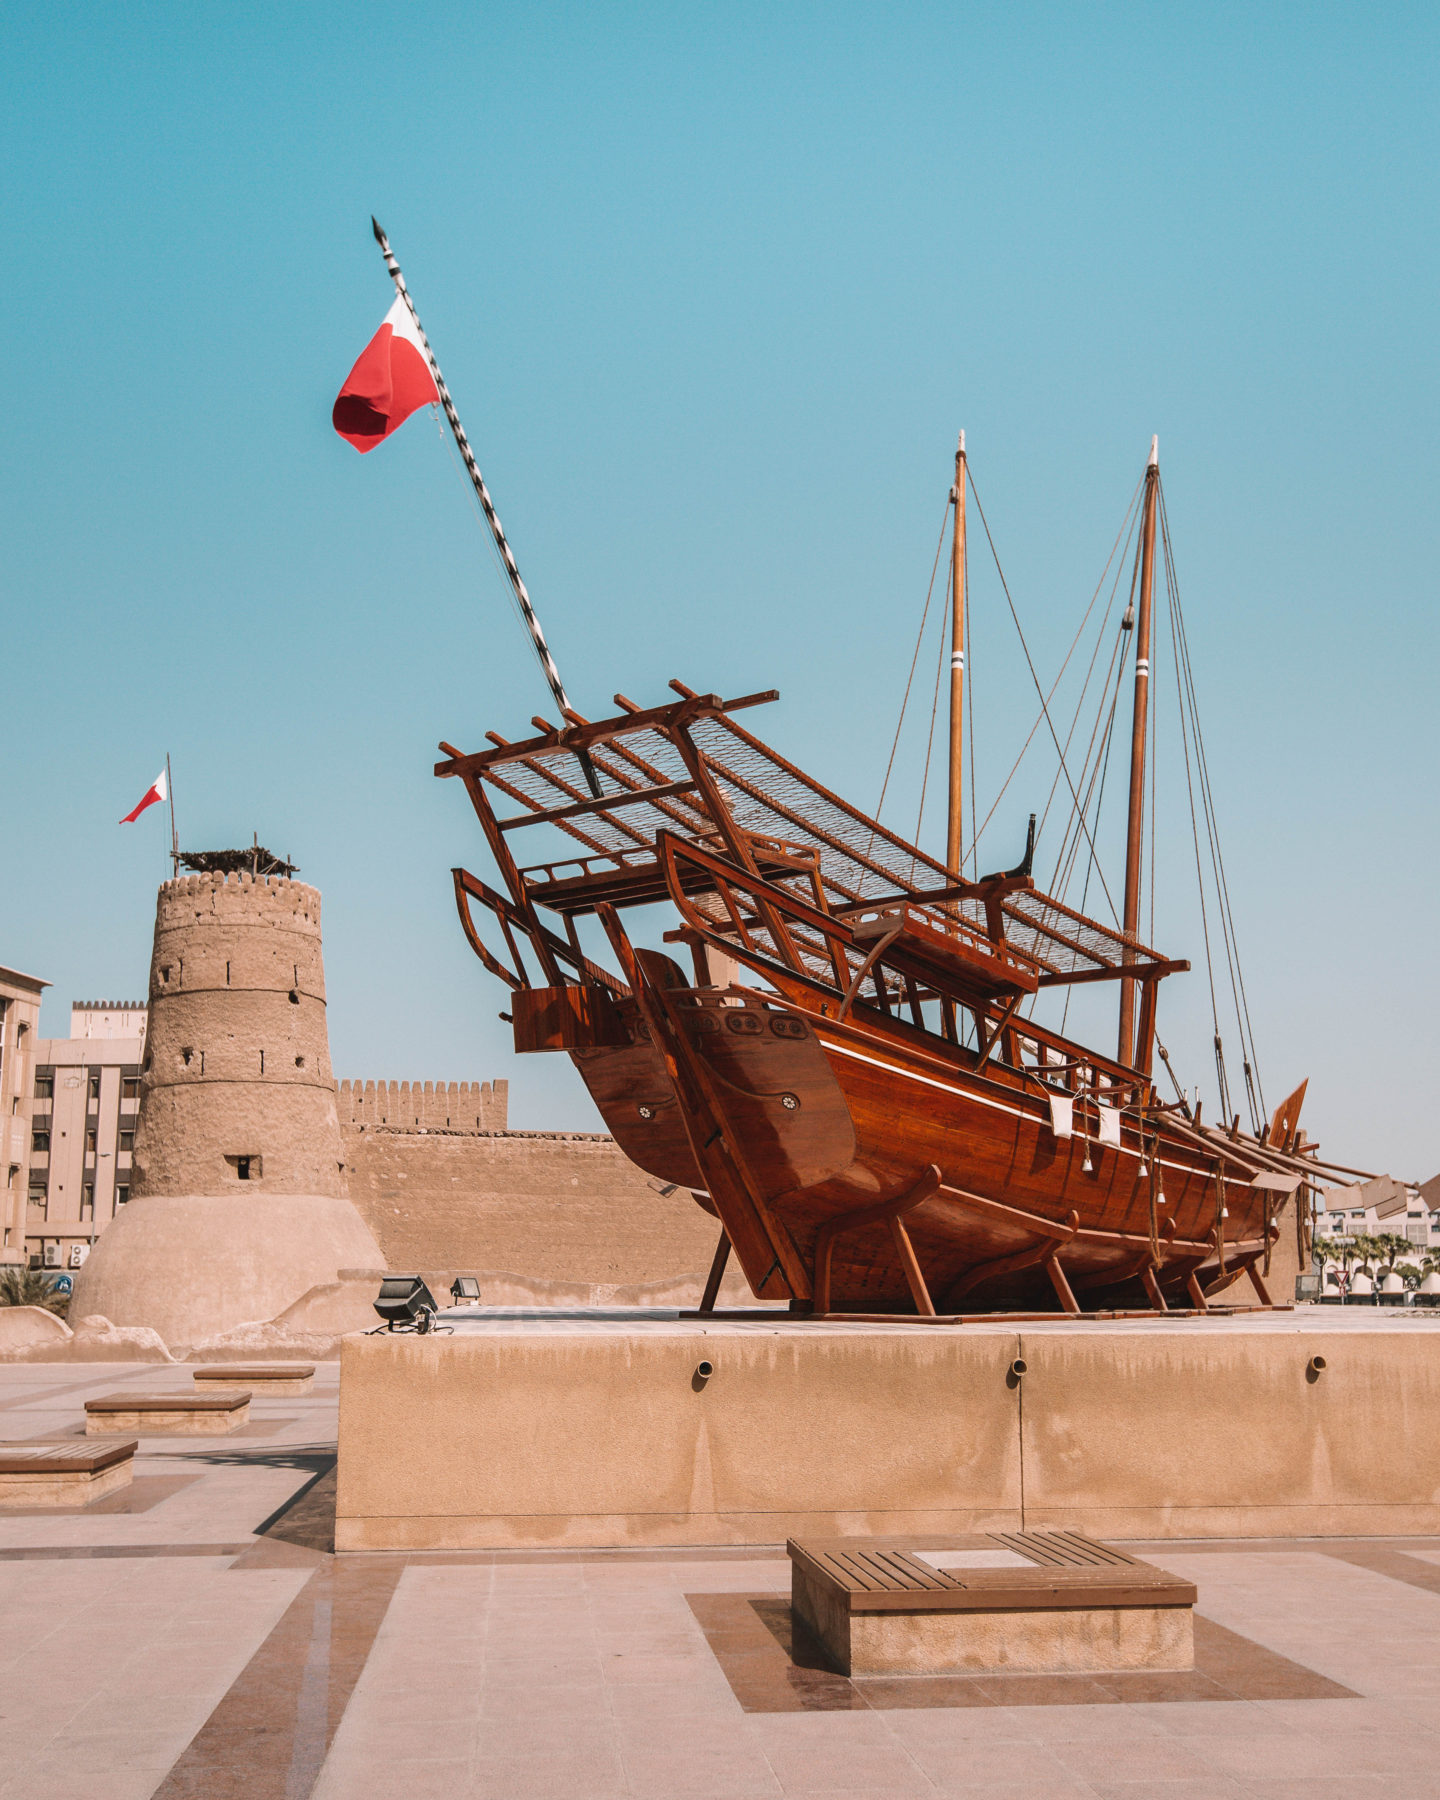 A traditional boat at the Dubai Museum